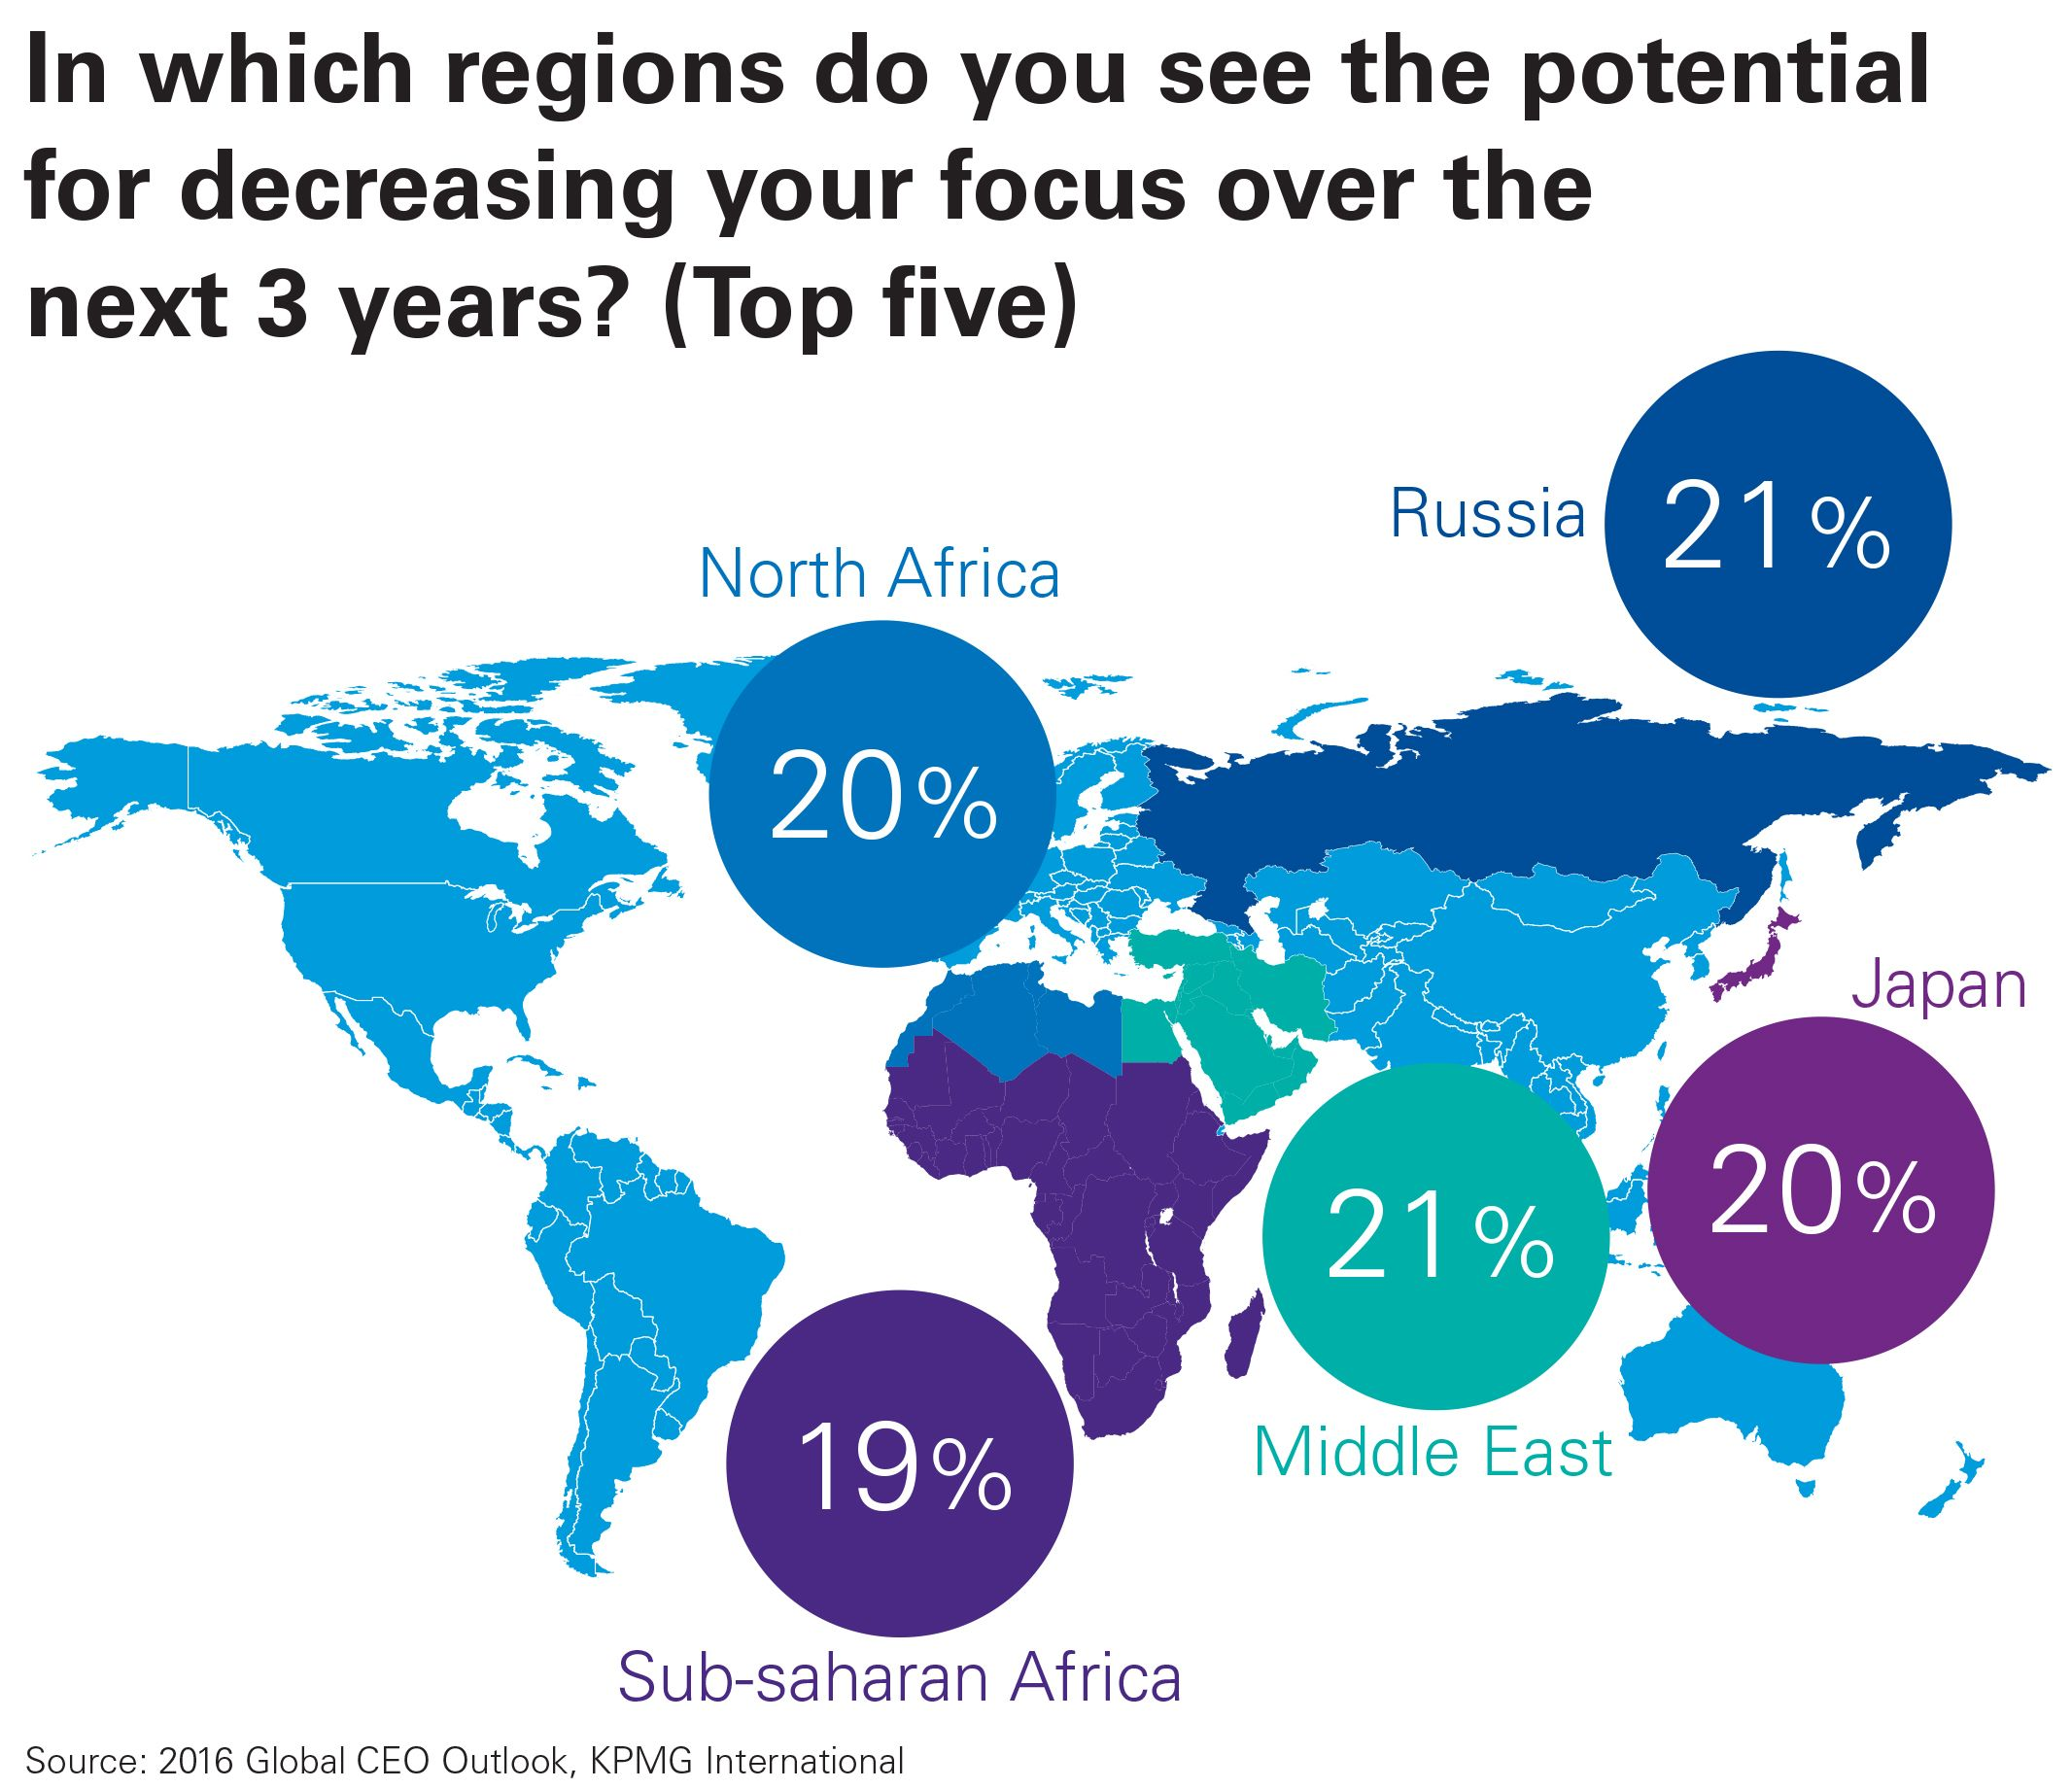 regions with potential for decreasing focus chart